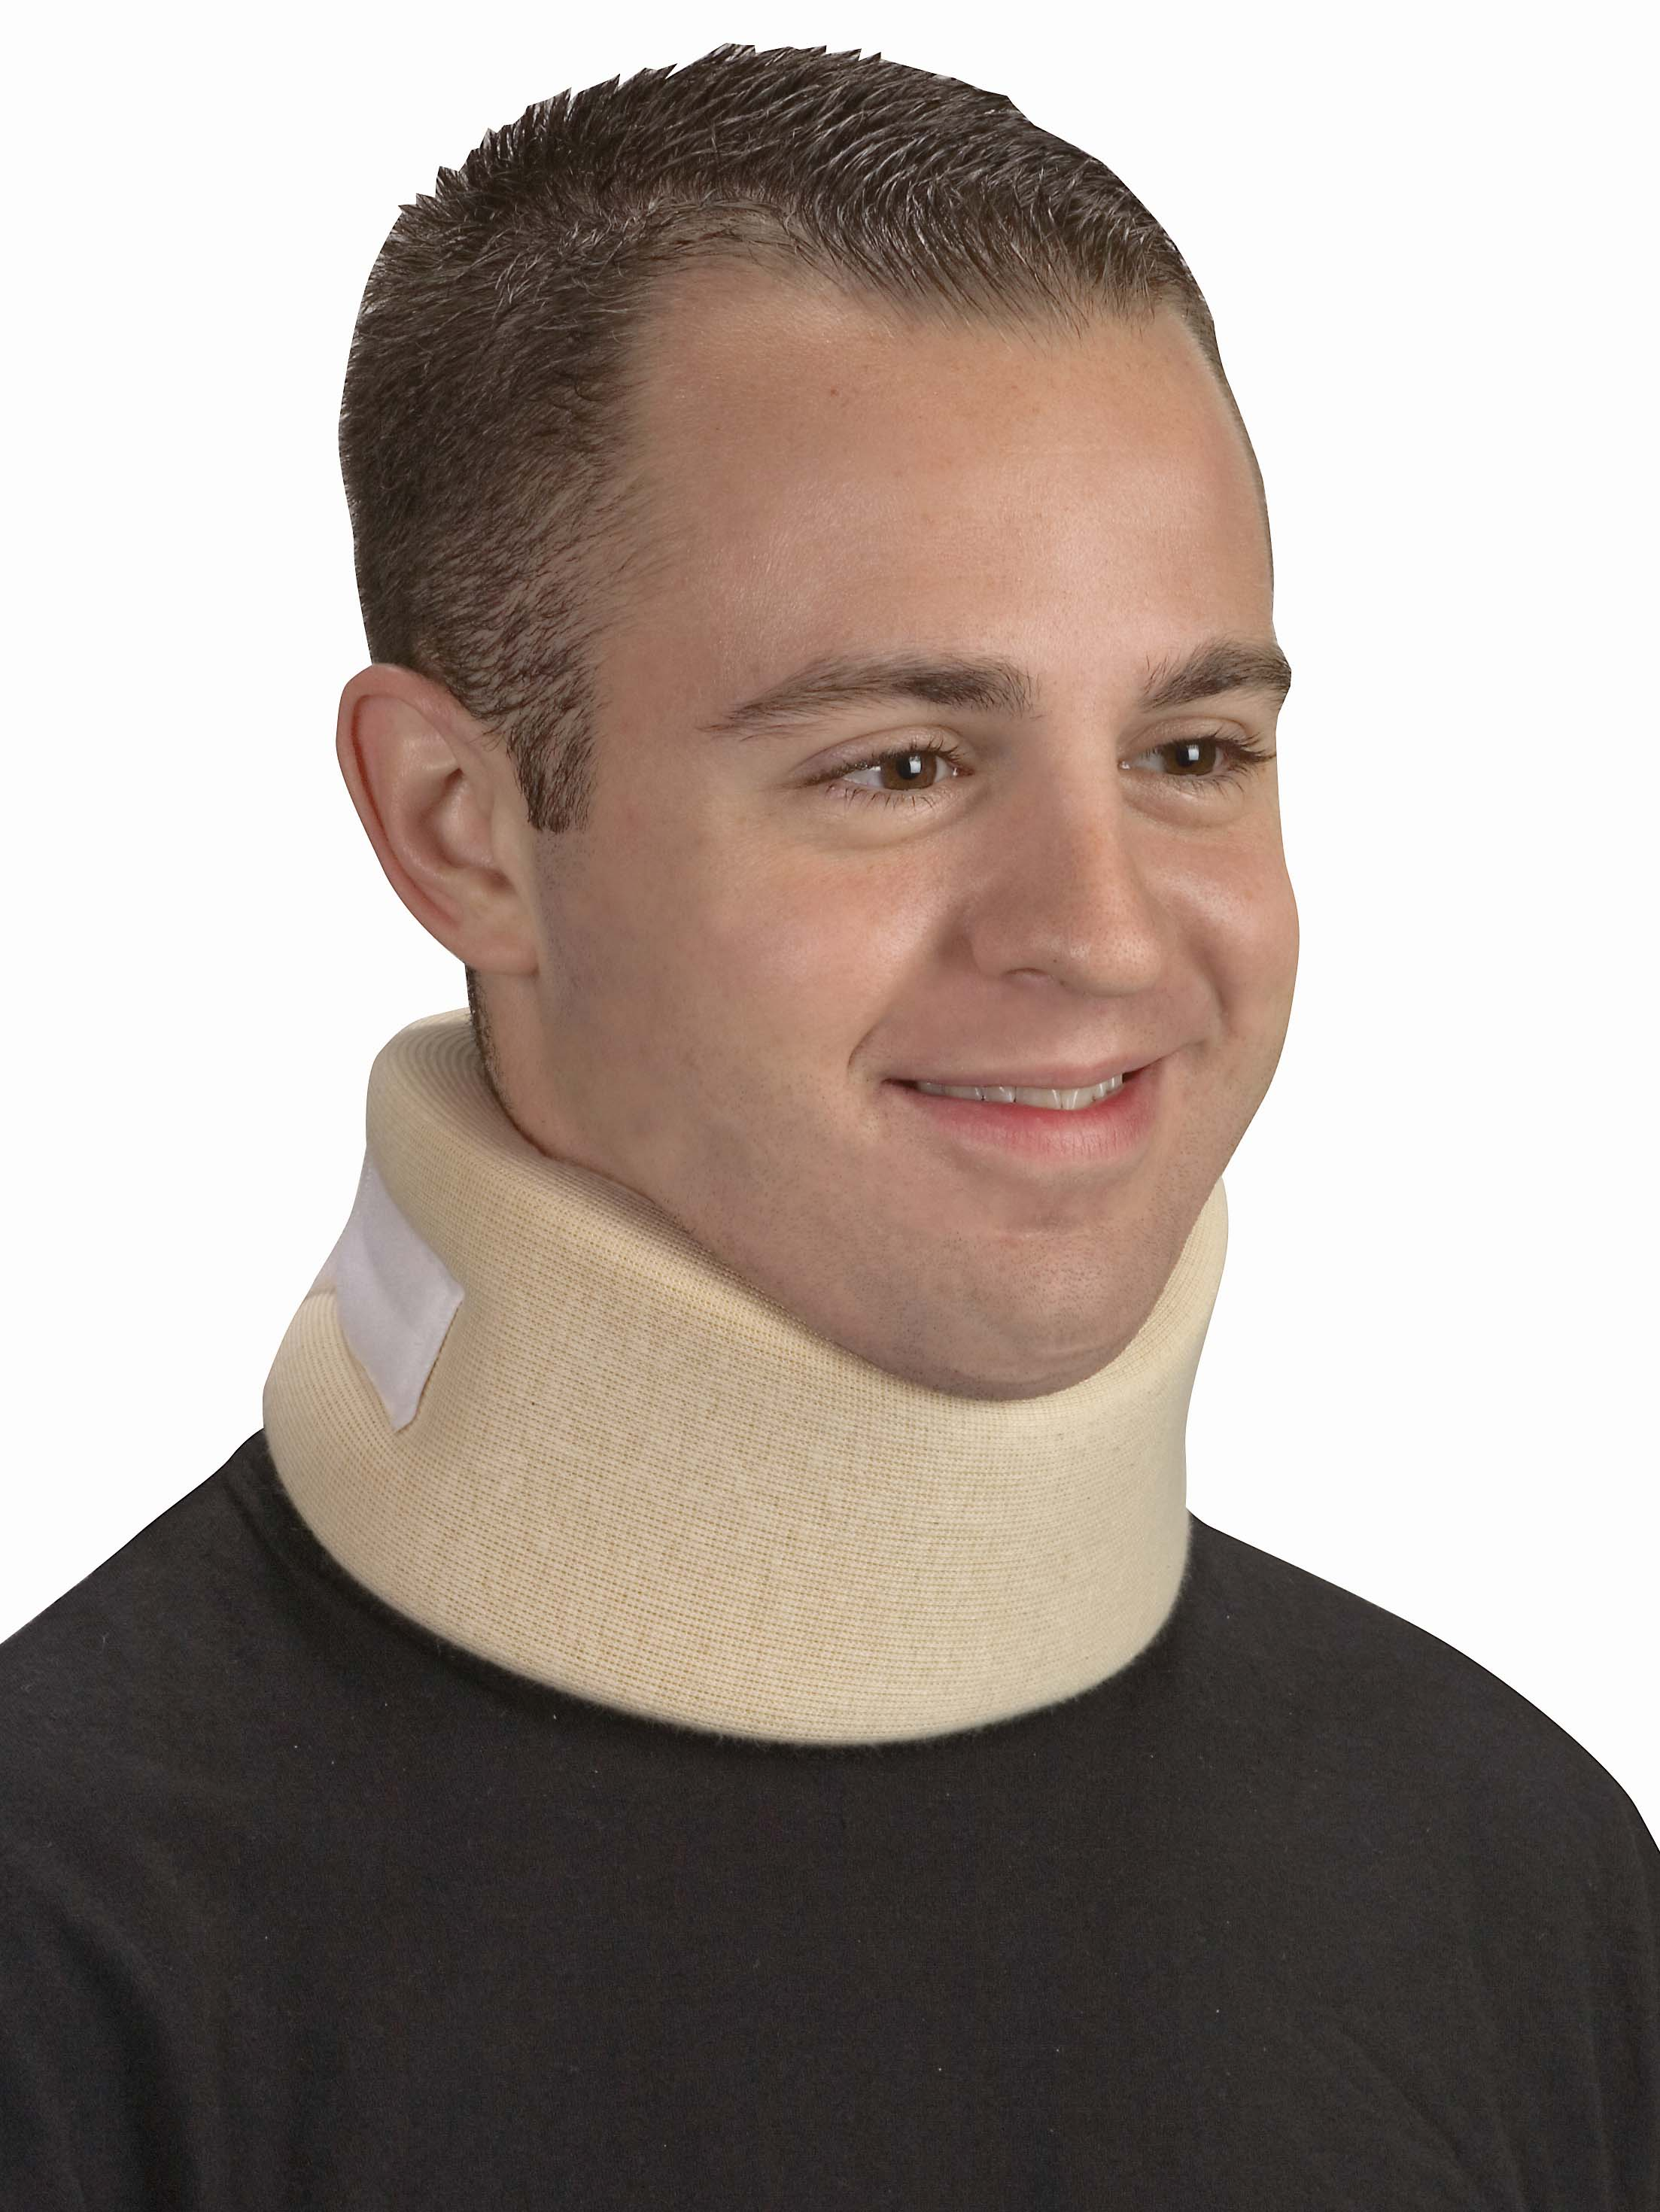 universal-firm-foam-cervical-collar-2-1-2-631-6057-0040-lr-2.jpg